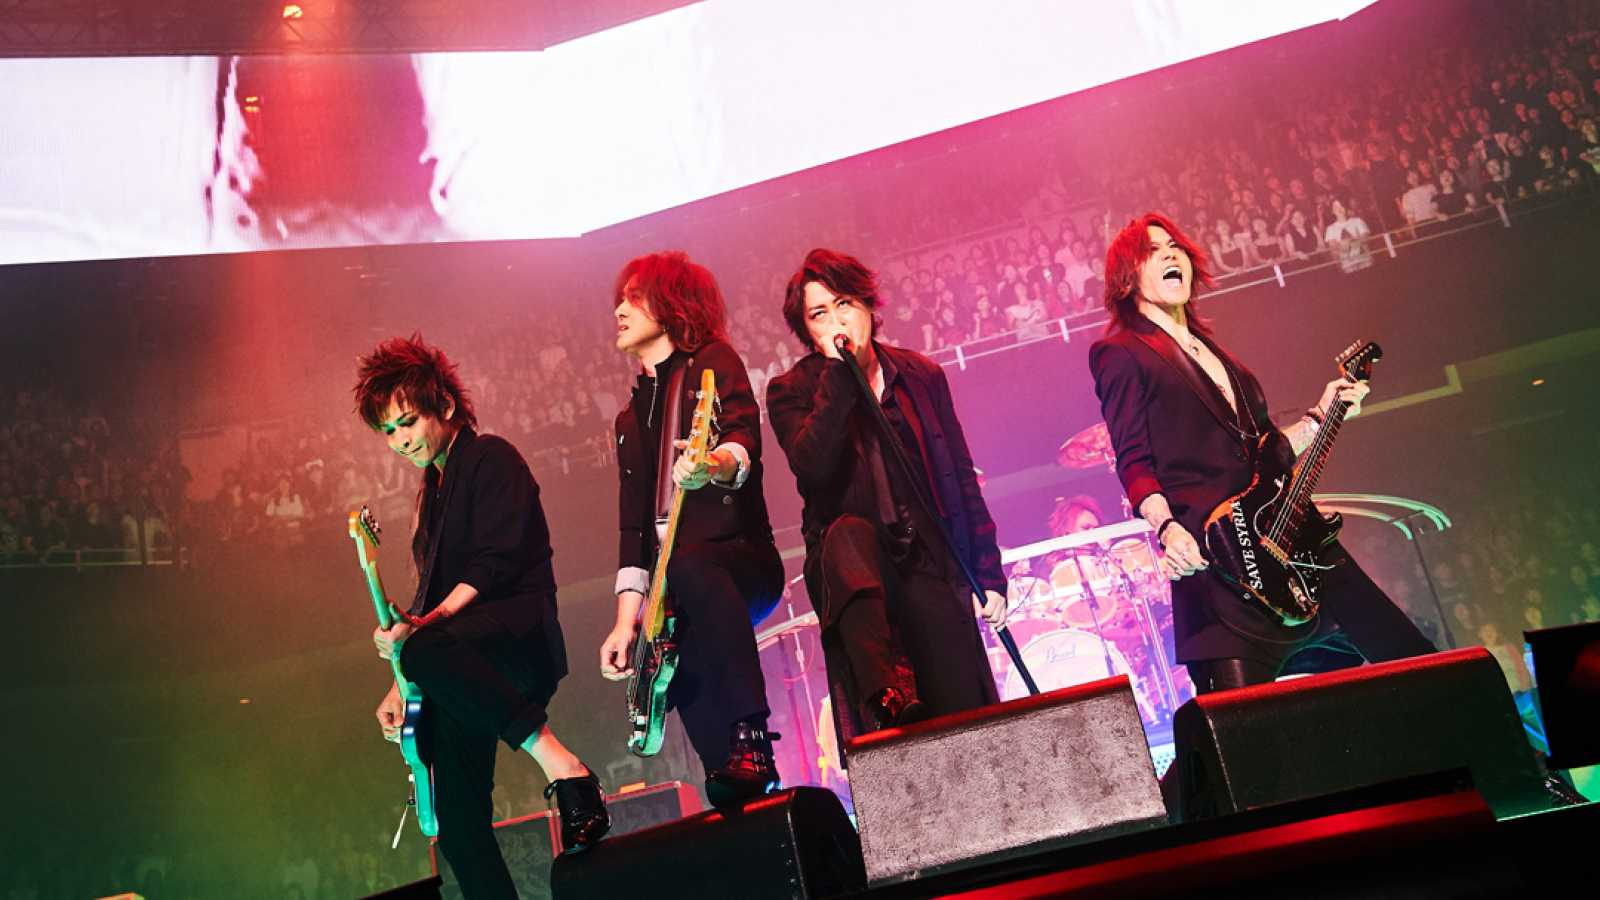 LUNA SEA 30th anniversary LIVE -Story of the ten thousand days- at Nippon Budokan Day 1 © Keiko Tanabe / Rui Hashimoto